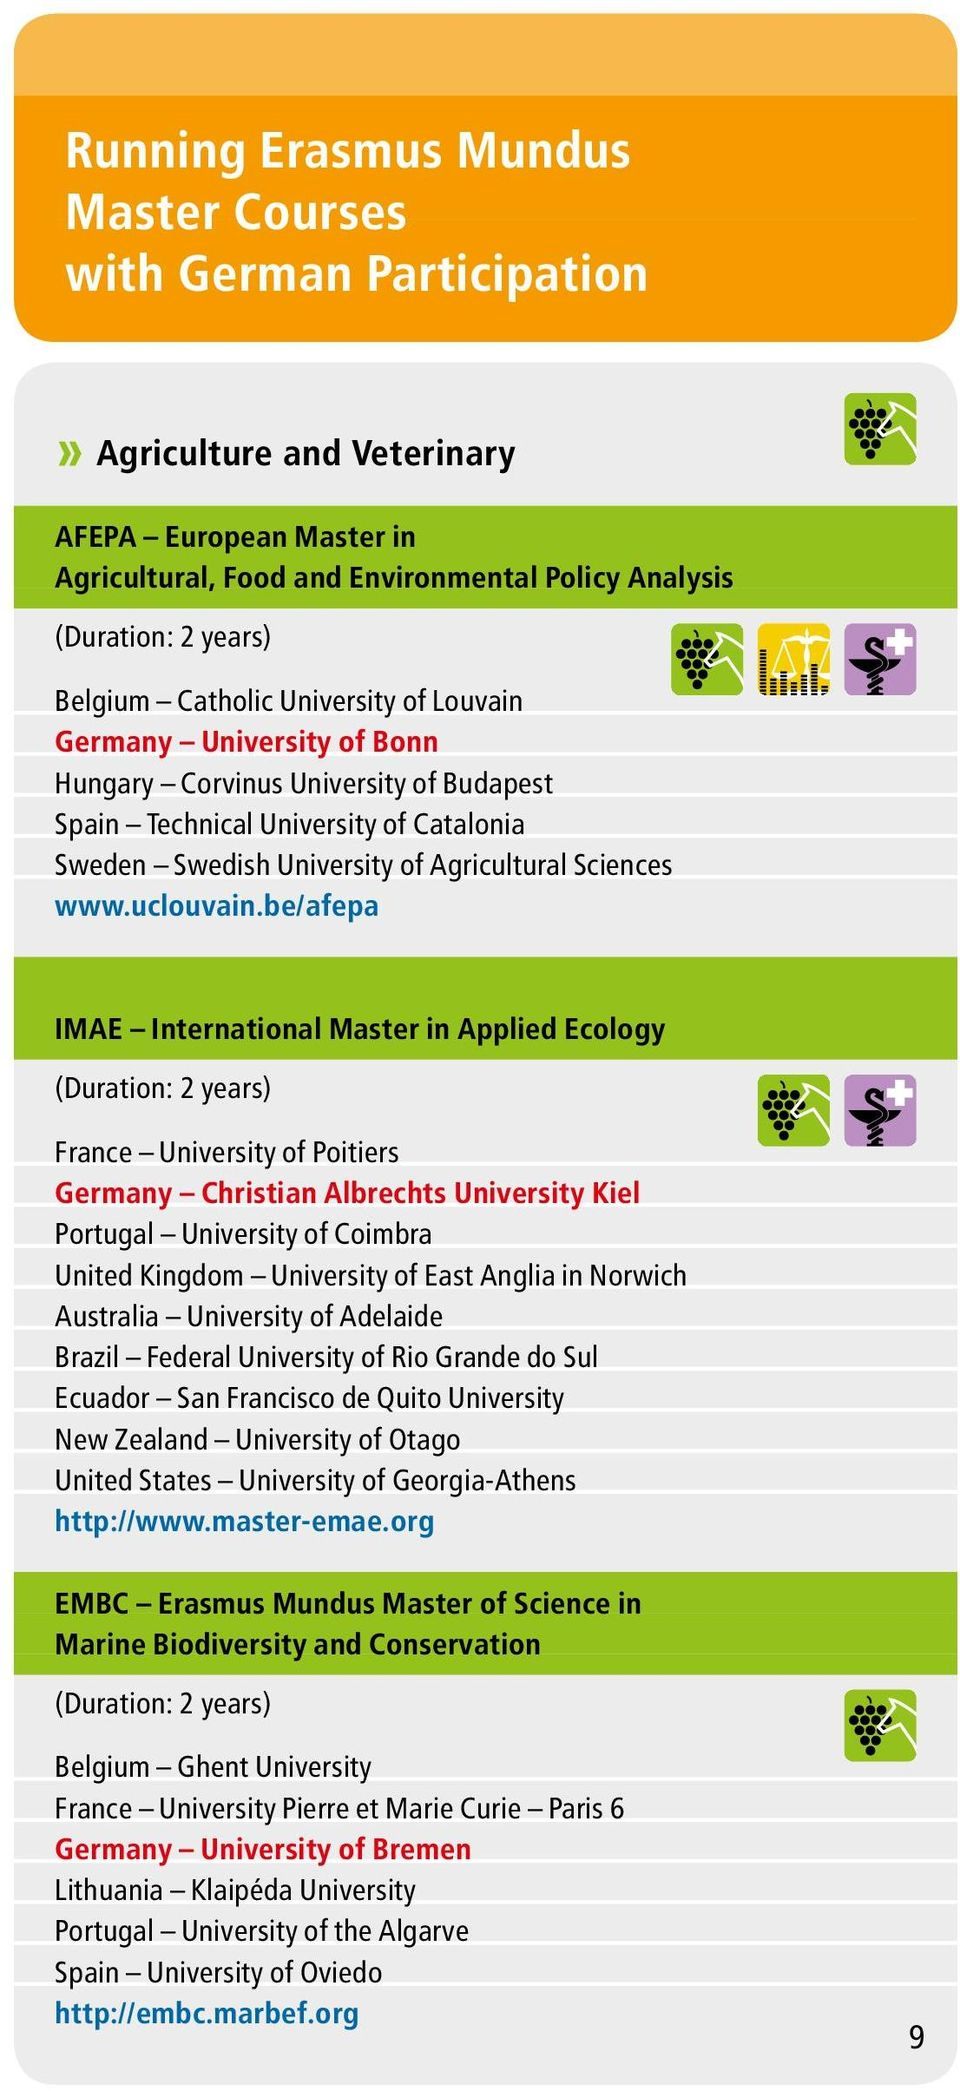 be/afepa IMAE International Master in Applied Ecology France University of Poitiers Germany Christian Albrechts University Kiel Portugal University of Coimbra United Kingdom University of East Anglia